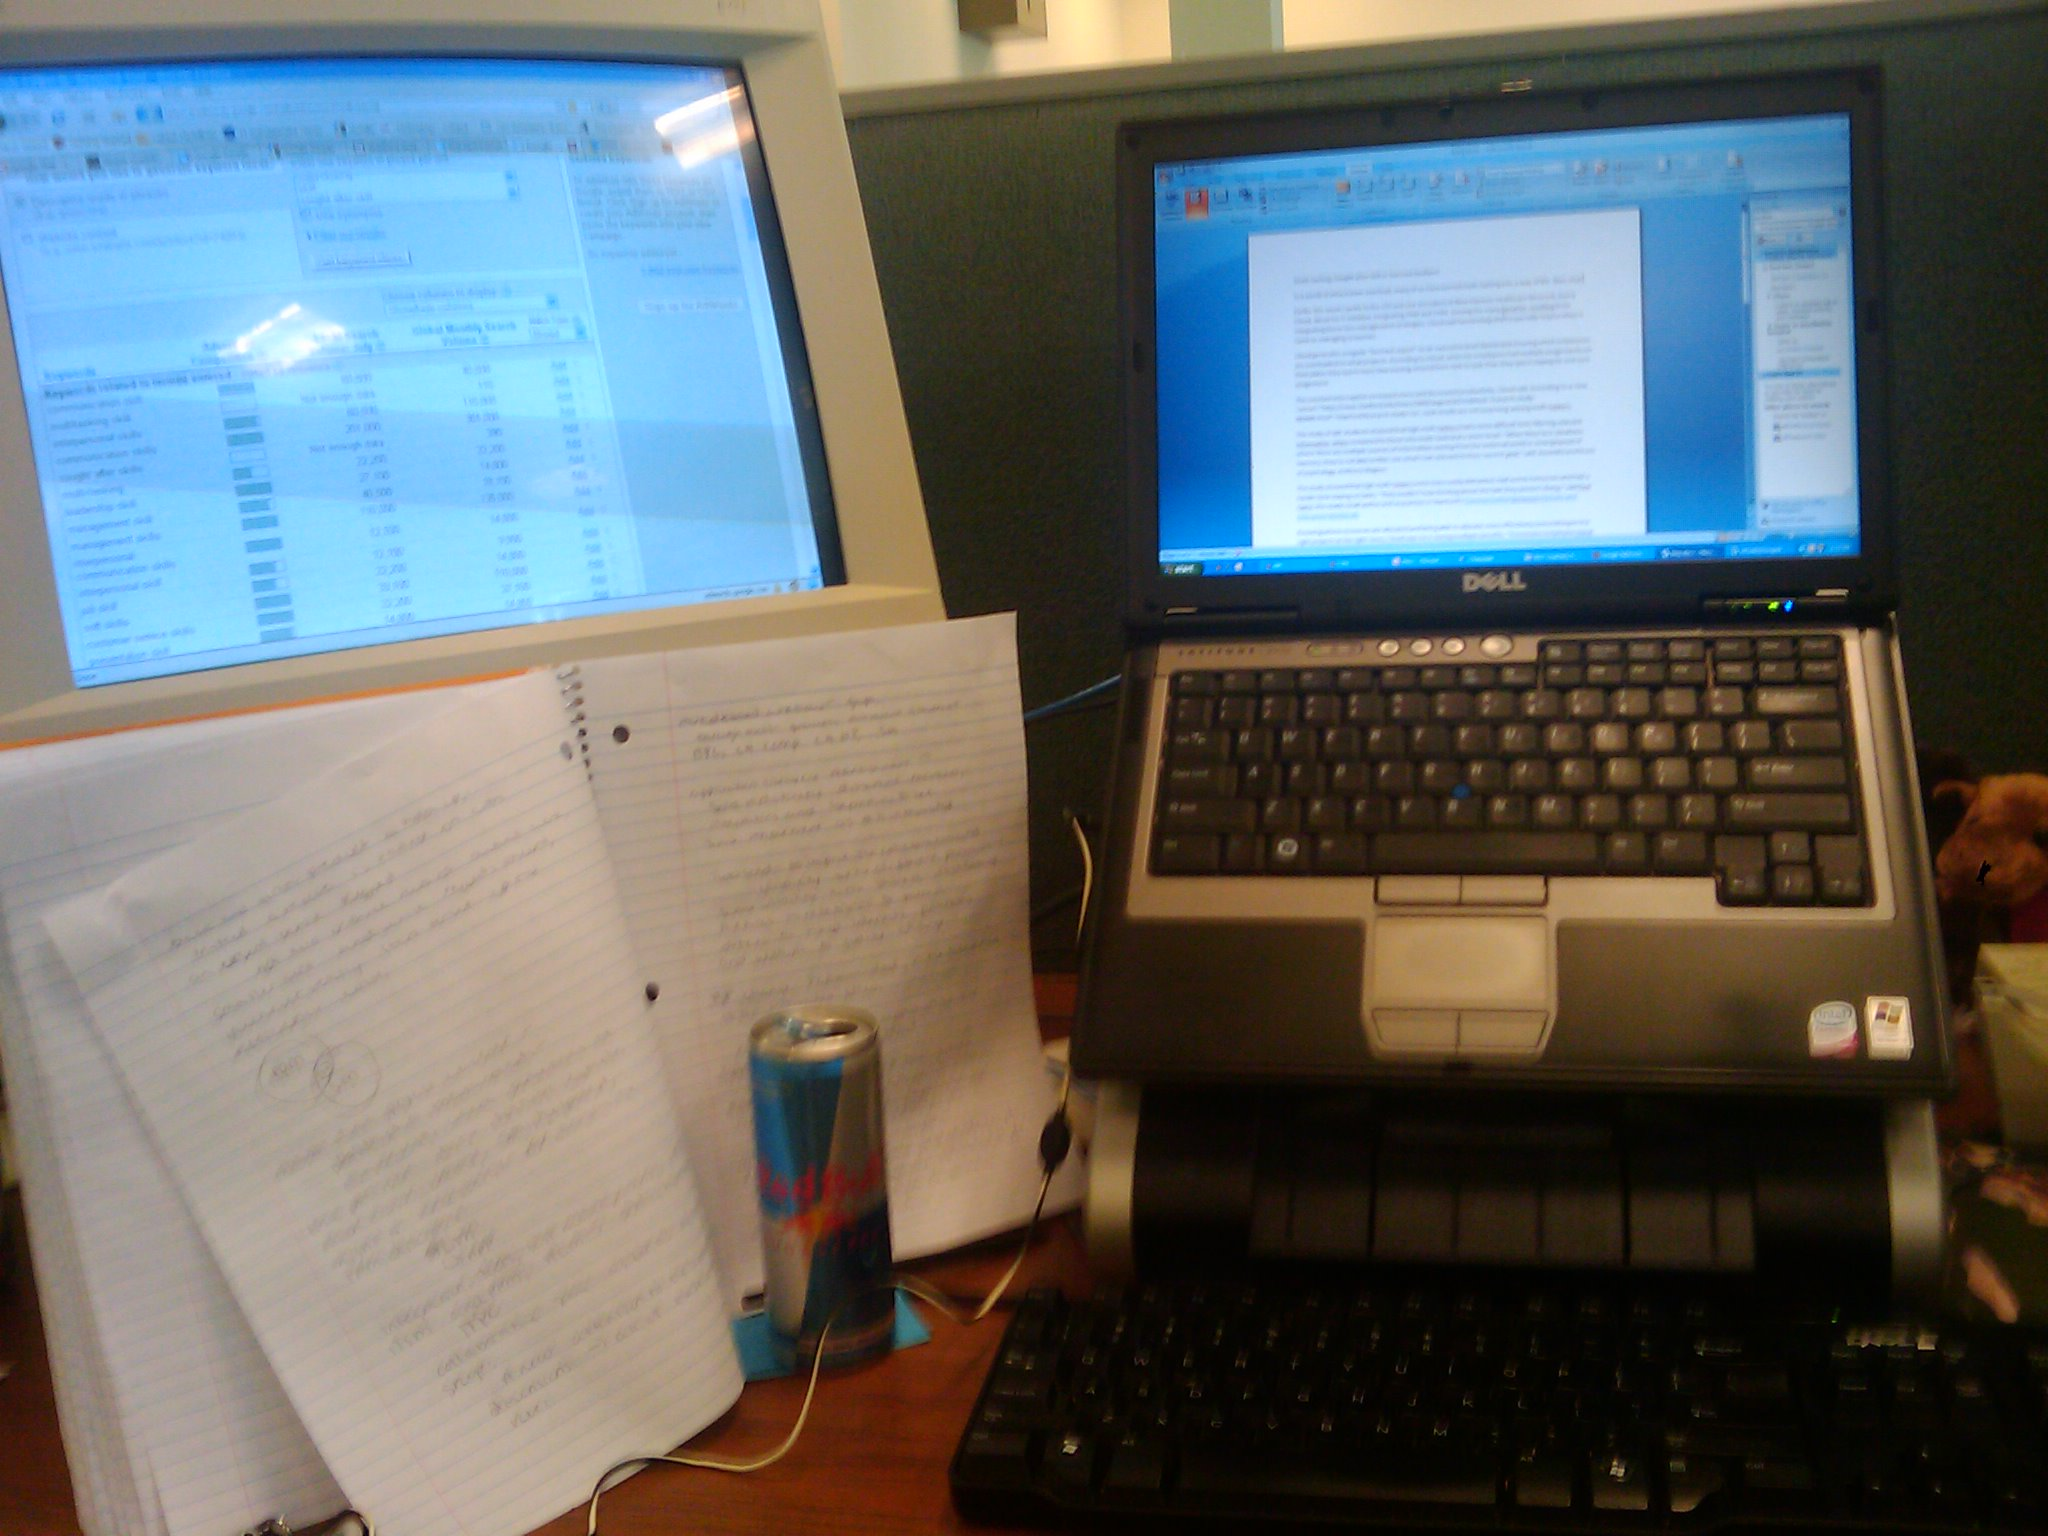 The desk of a multitasker